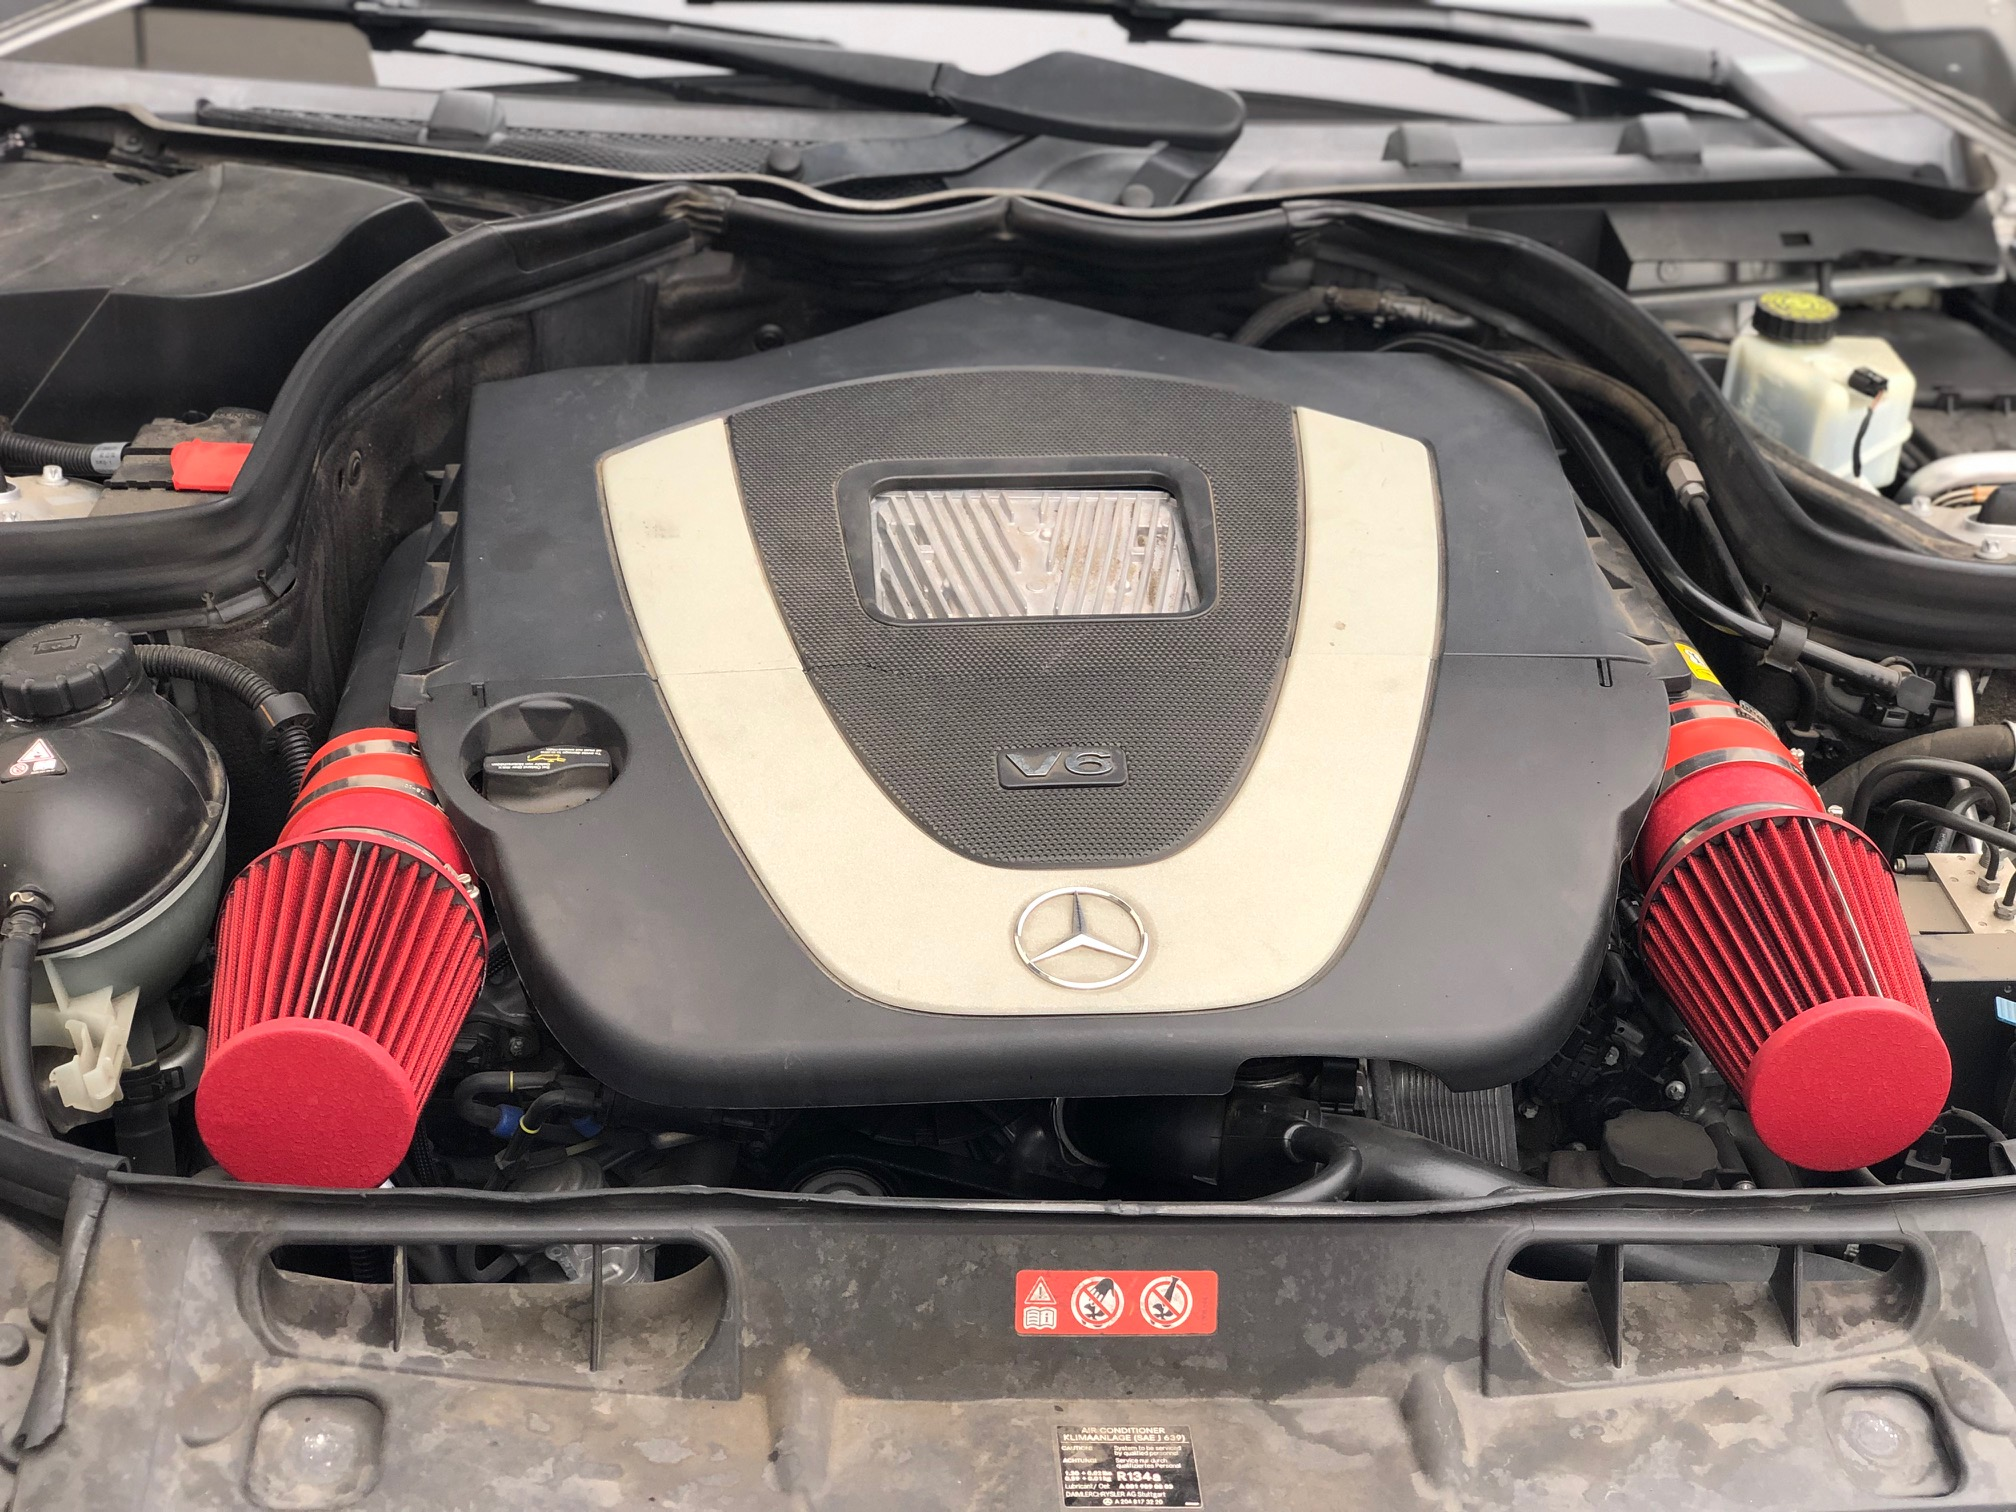 ALL RED COATED Air intake kit for 2008-12 Mercedes Benz C300 C350 3.0L 3.5L V6